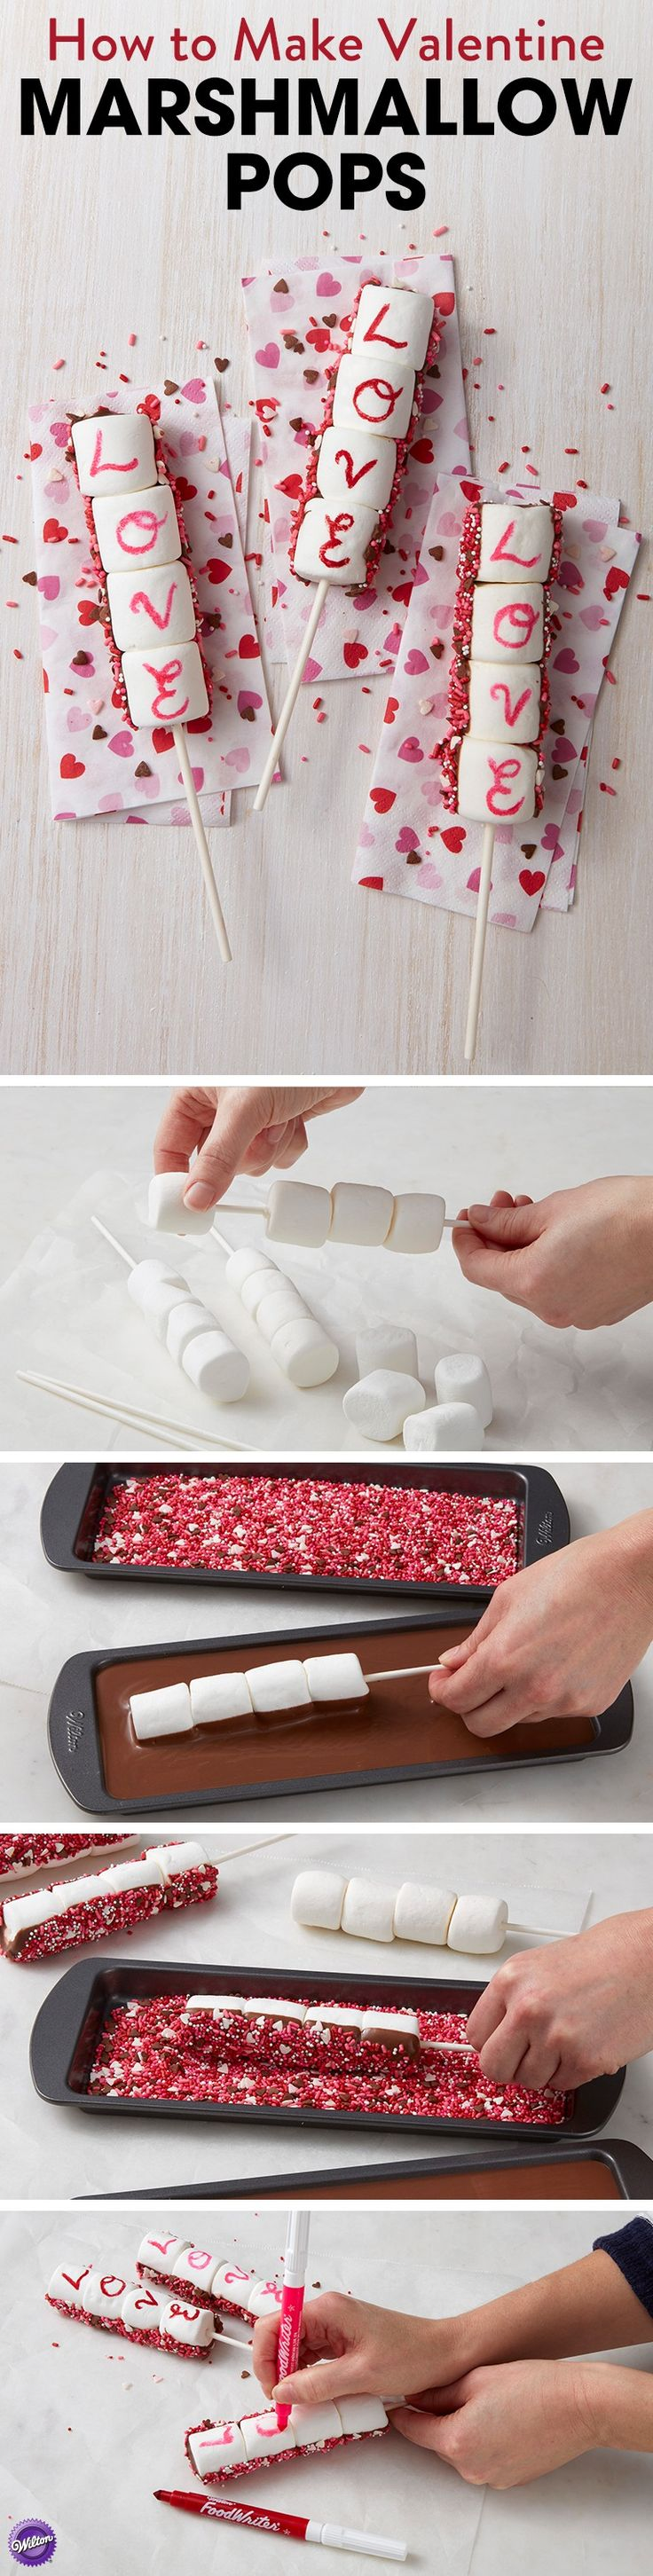 "How to Make Valentine Marshmallow Pops - Lightly grease lollipop sticks. Slide four marshmallows onto each stick, then dip back side of marshmallow pops into melted Candy Melts and into sprinkle mixture. Using FoodWriter markers, write ""LOVE"" on marshmallow pops."